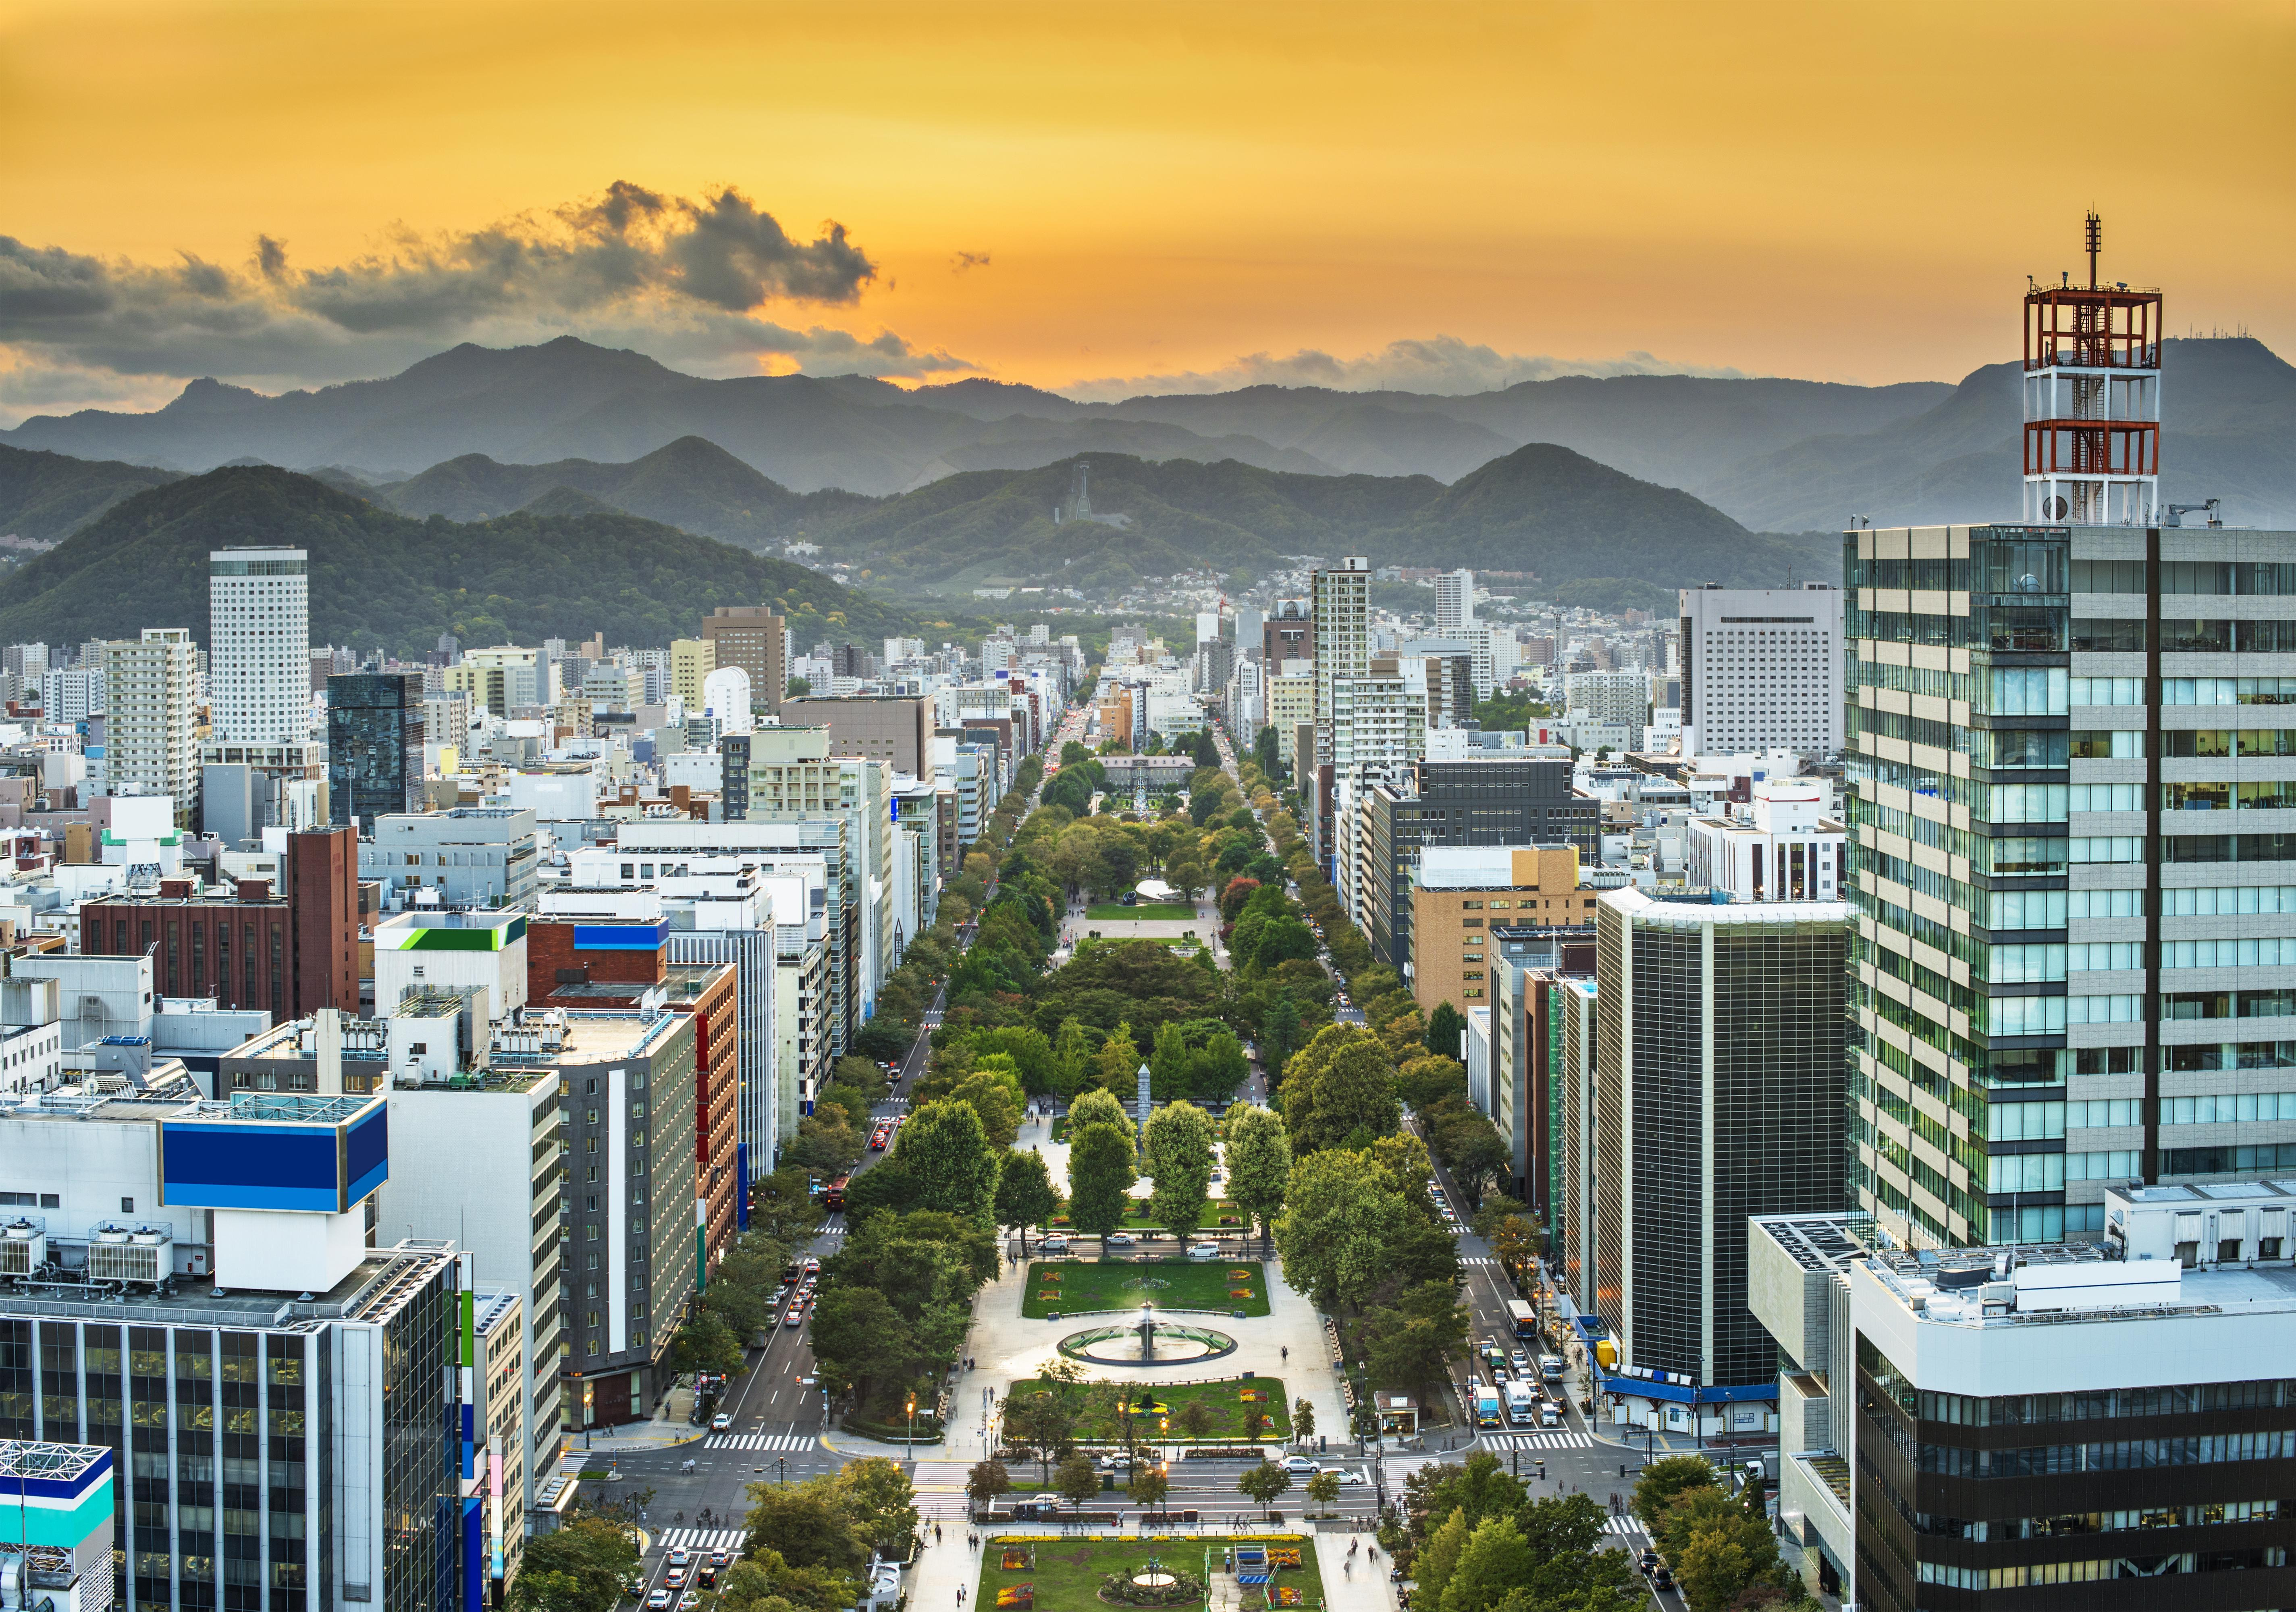 How to Spend 1 Day in Sapporo